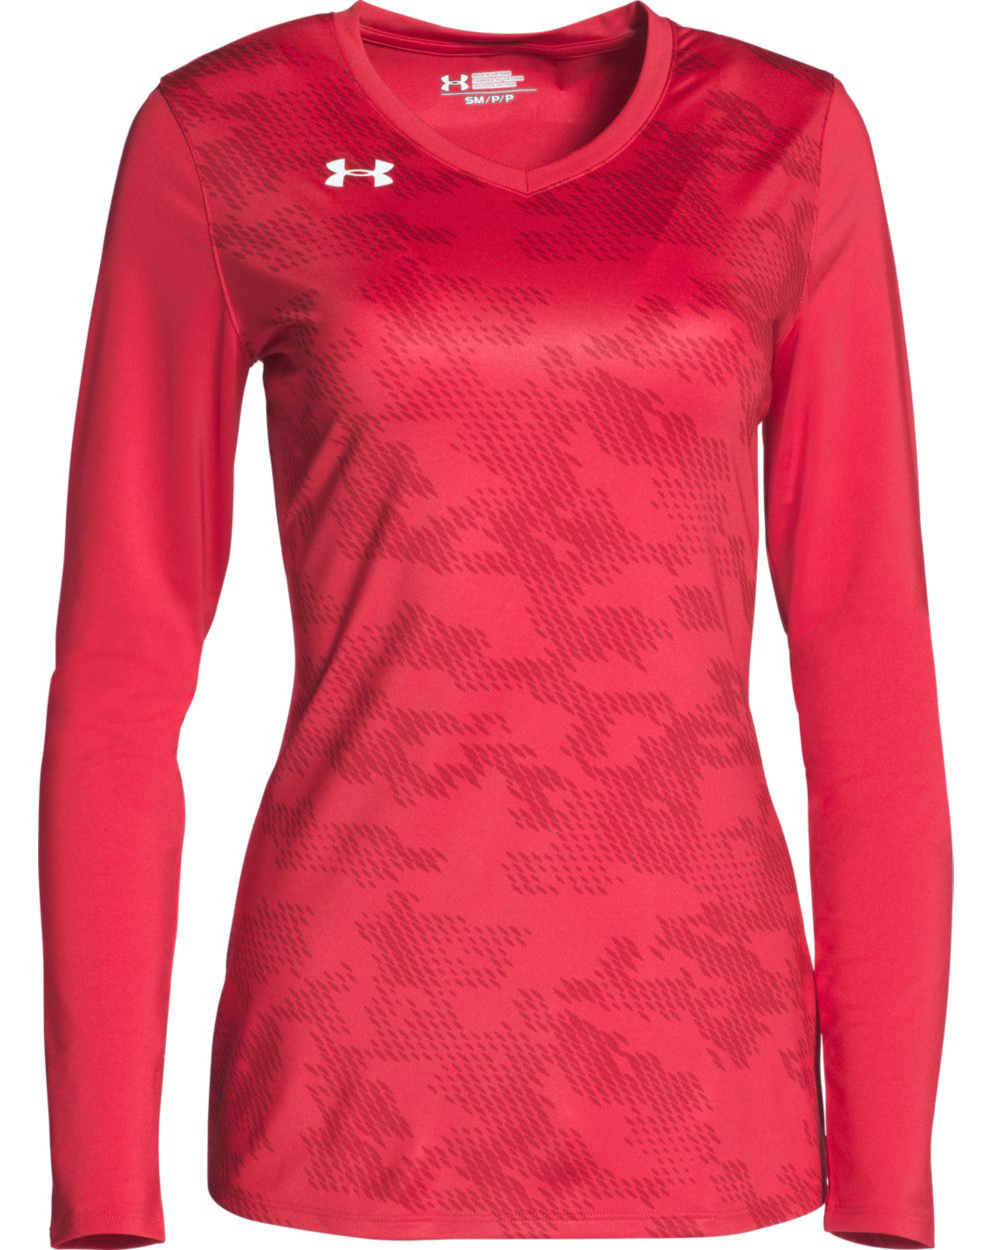 9b52367f304 Add to My Lists. Under Armour Womens Ultimate Spike Printed Long Sleeve  Volleyball Jersey